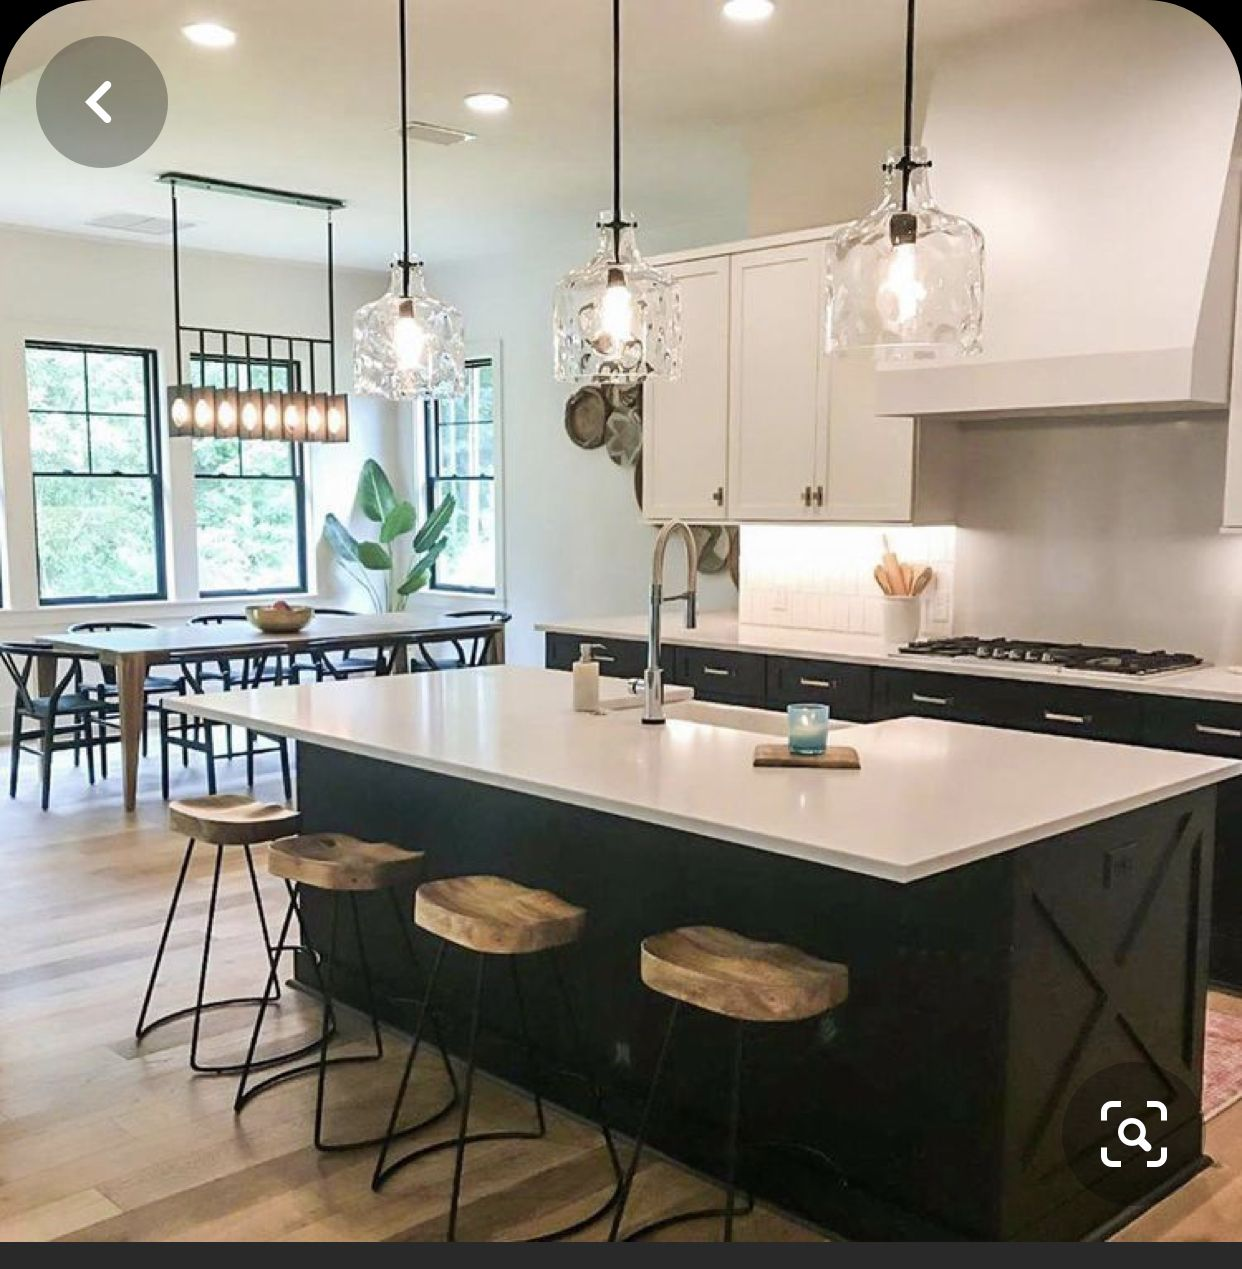 Pin By Lilly Burgos On Home In 2020 Farmhouse Kitchen Cabinets Farmhouse Kitchen Lighting Kitchen Remodel